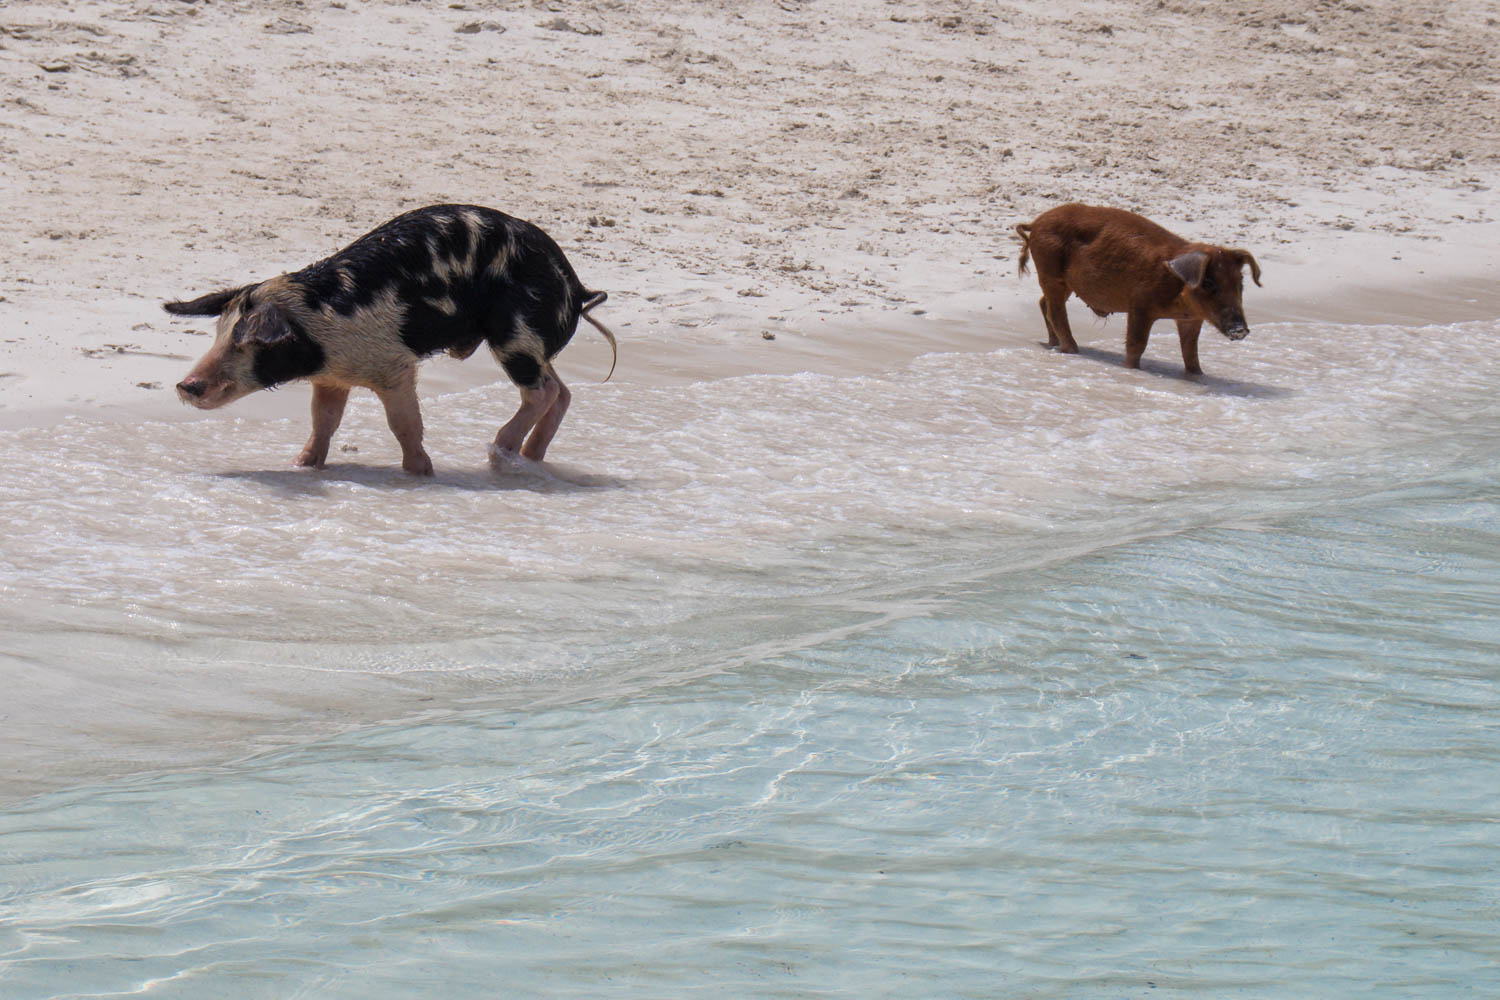 Pig Island has roughly 25 pigs living on it. Pig Beach is usually one of the busiest pig island tours in the Bahamas.